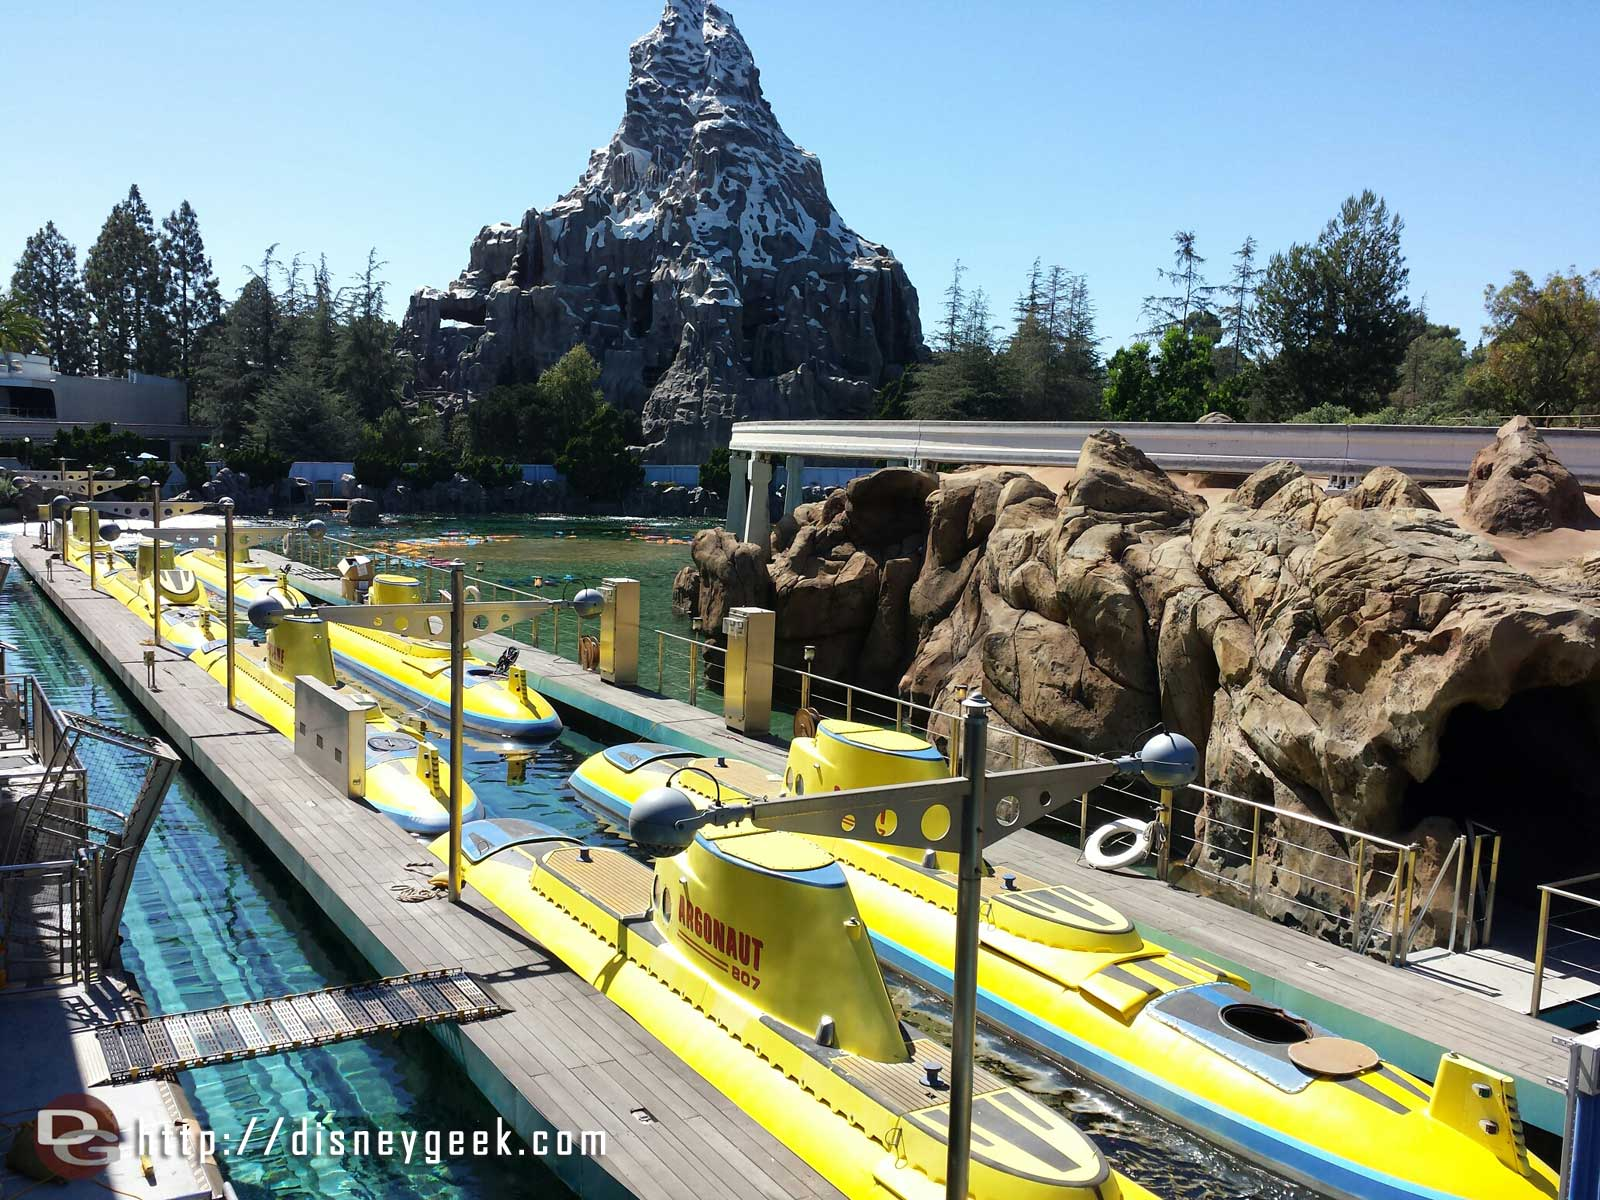 The sub lagoon has been filled since last week #Disneyland submarine fleet